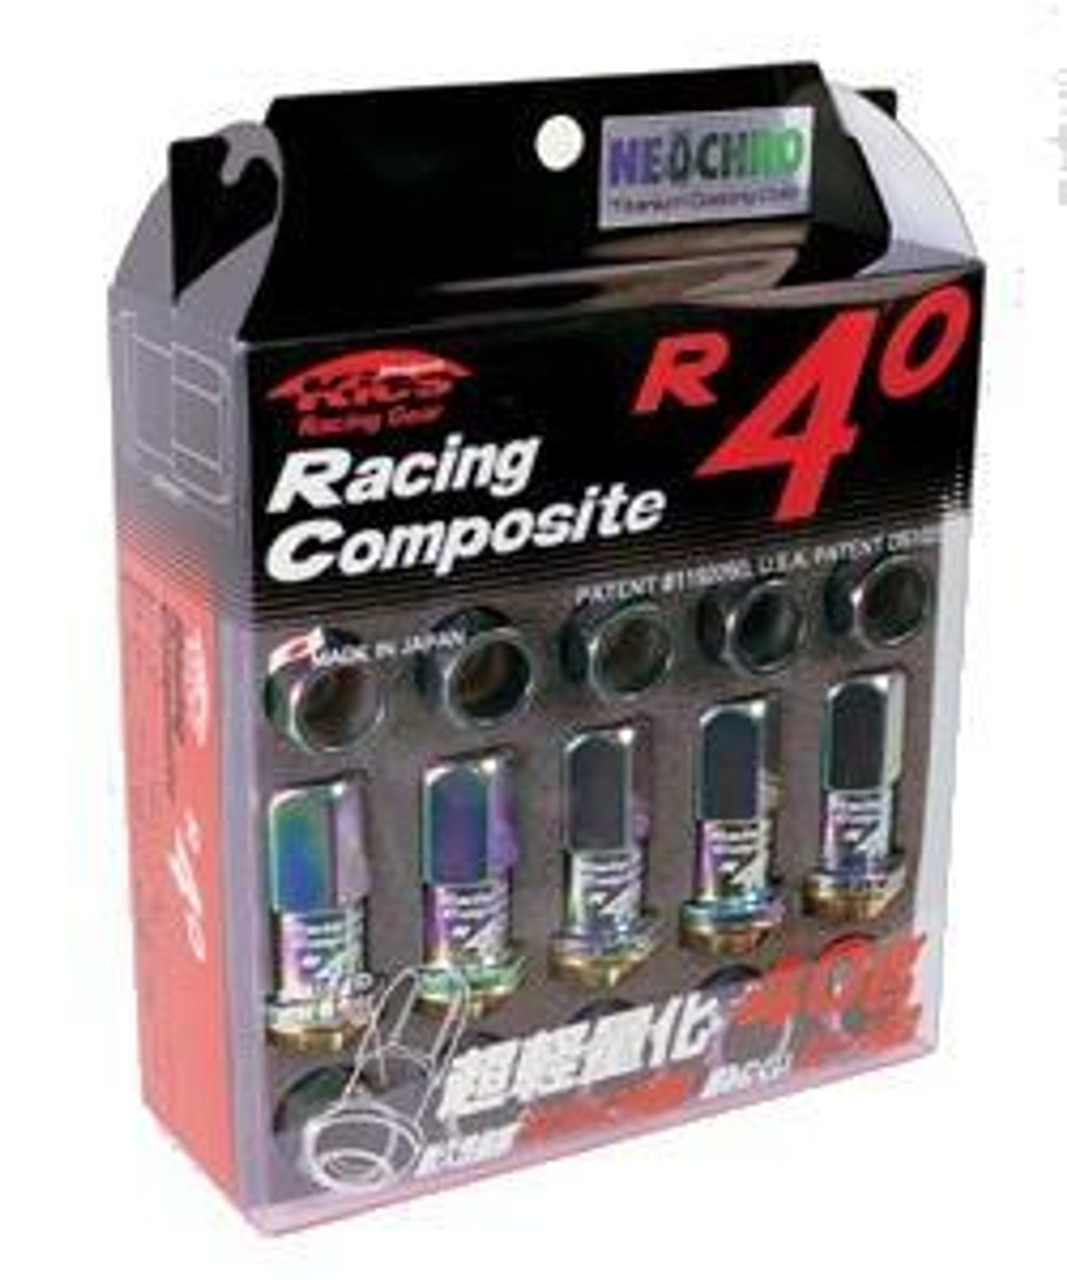 31875N  -Kics Project R40 Lug Nuts  Color: NeoChrome; Size: 12X1.25